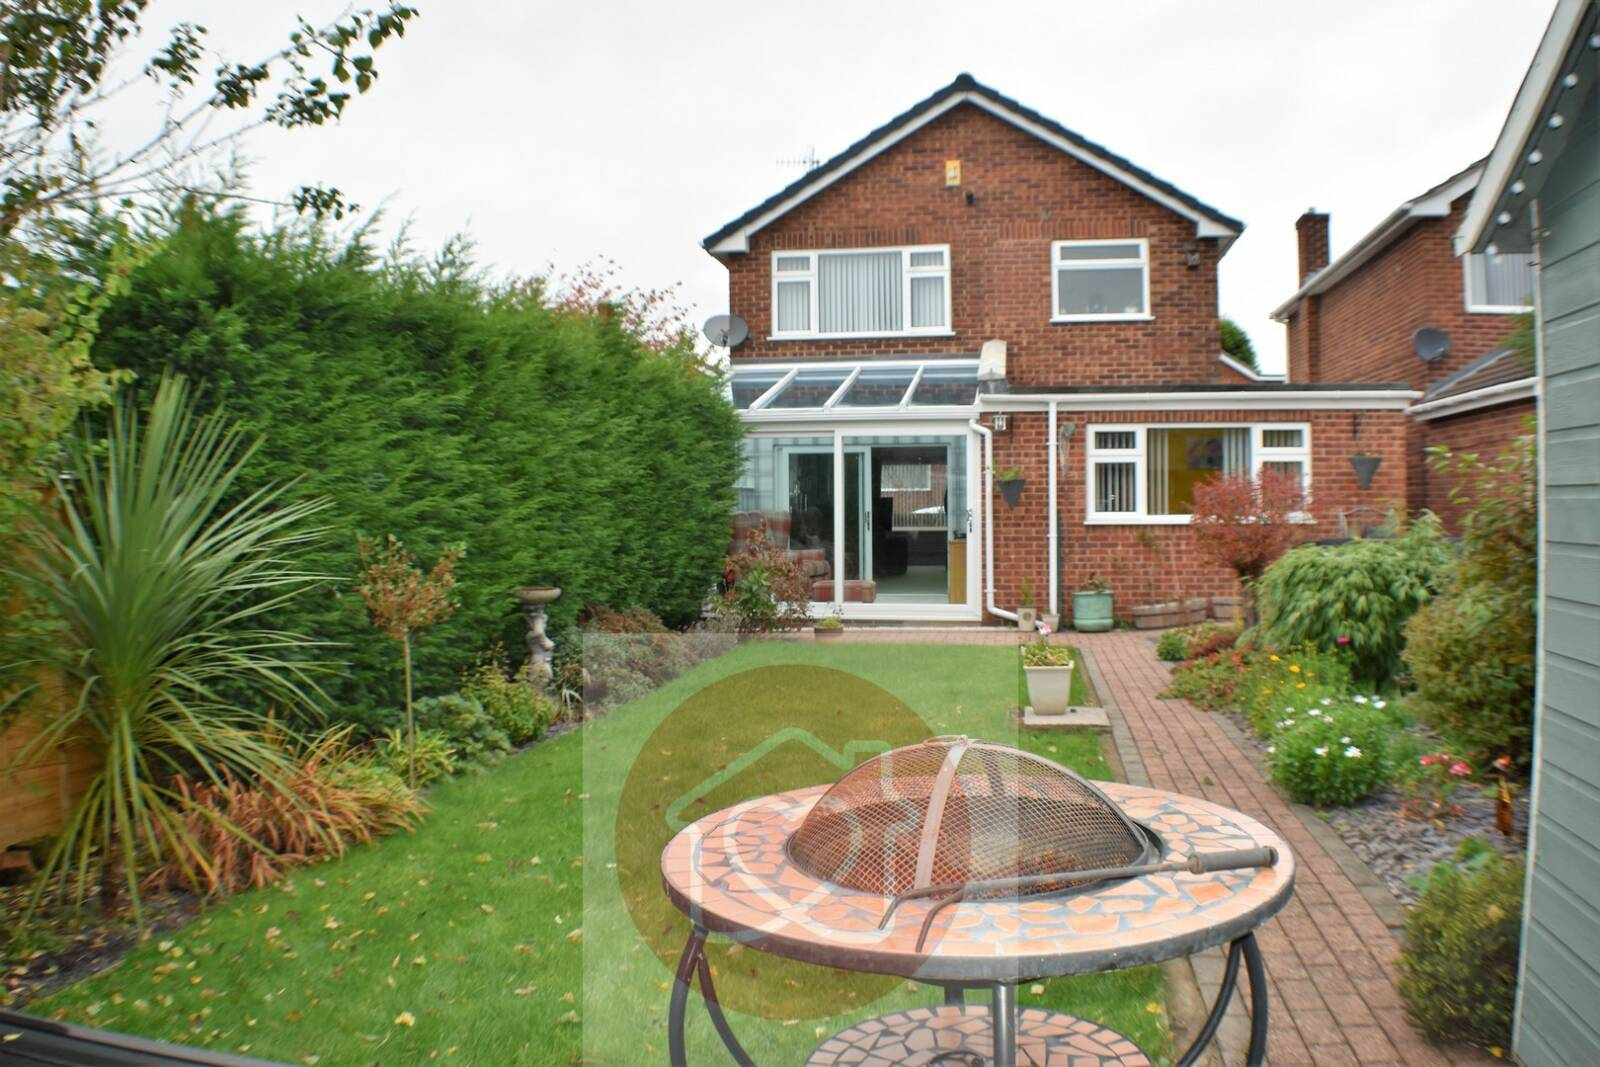 Detached three bedroom extended family home. Abundance of space & well presented, finished to a high standard. Popular residential location. Near stunning Bestwood Country Park.